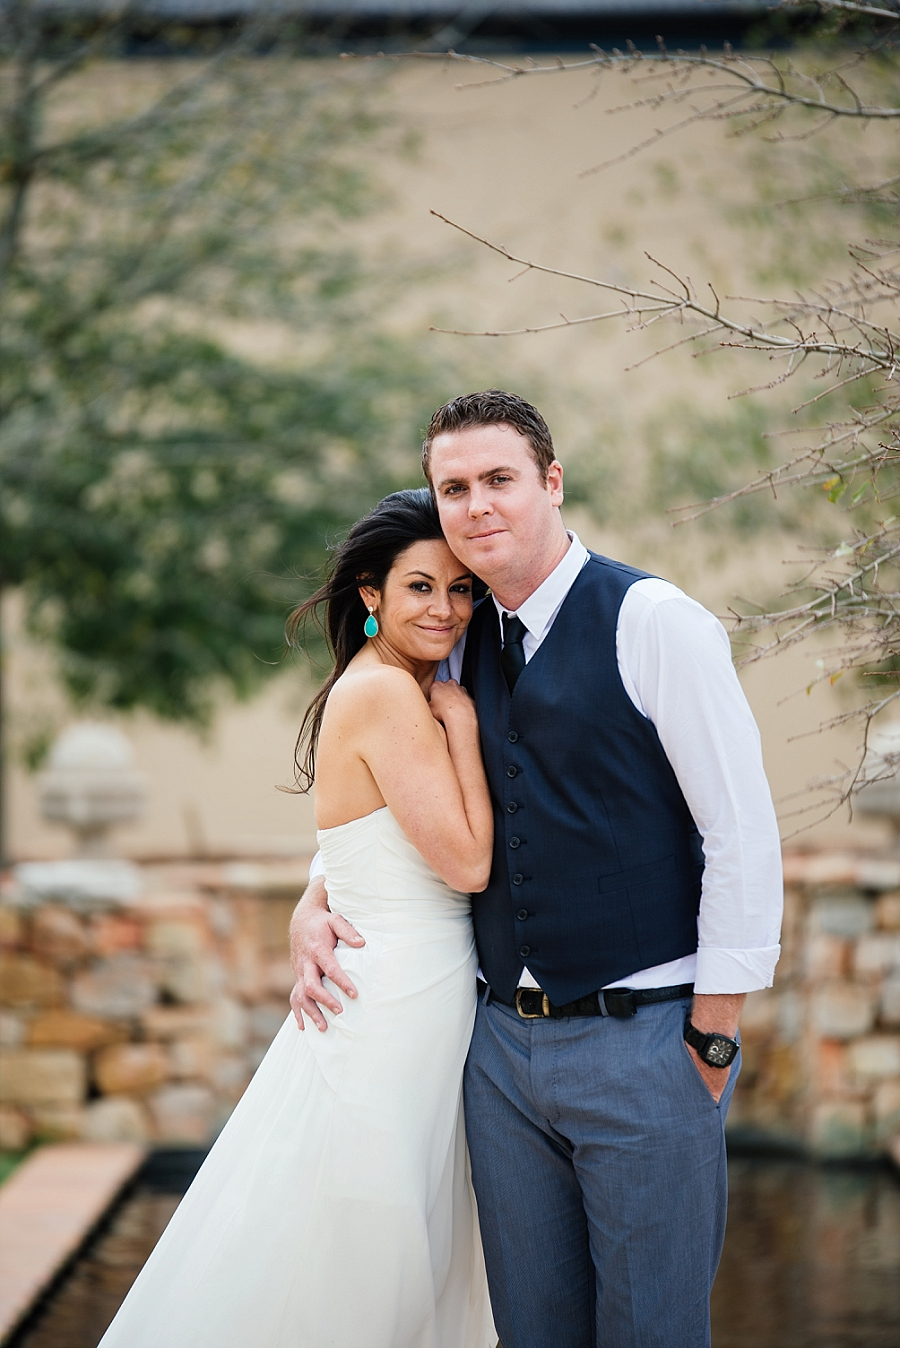 Darren Bester Photography - Wedding Photographer - Cape Town - The Halliday Wedding_0048.jpg